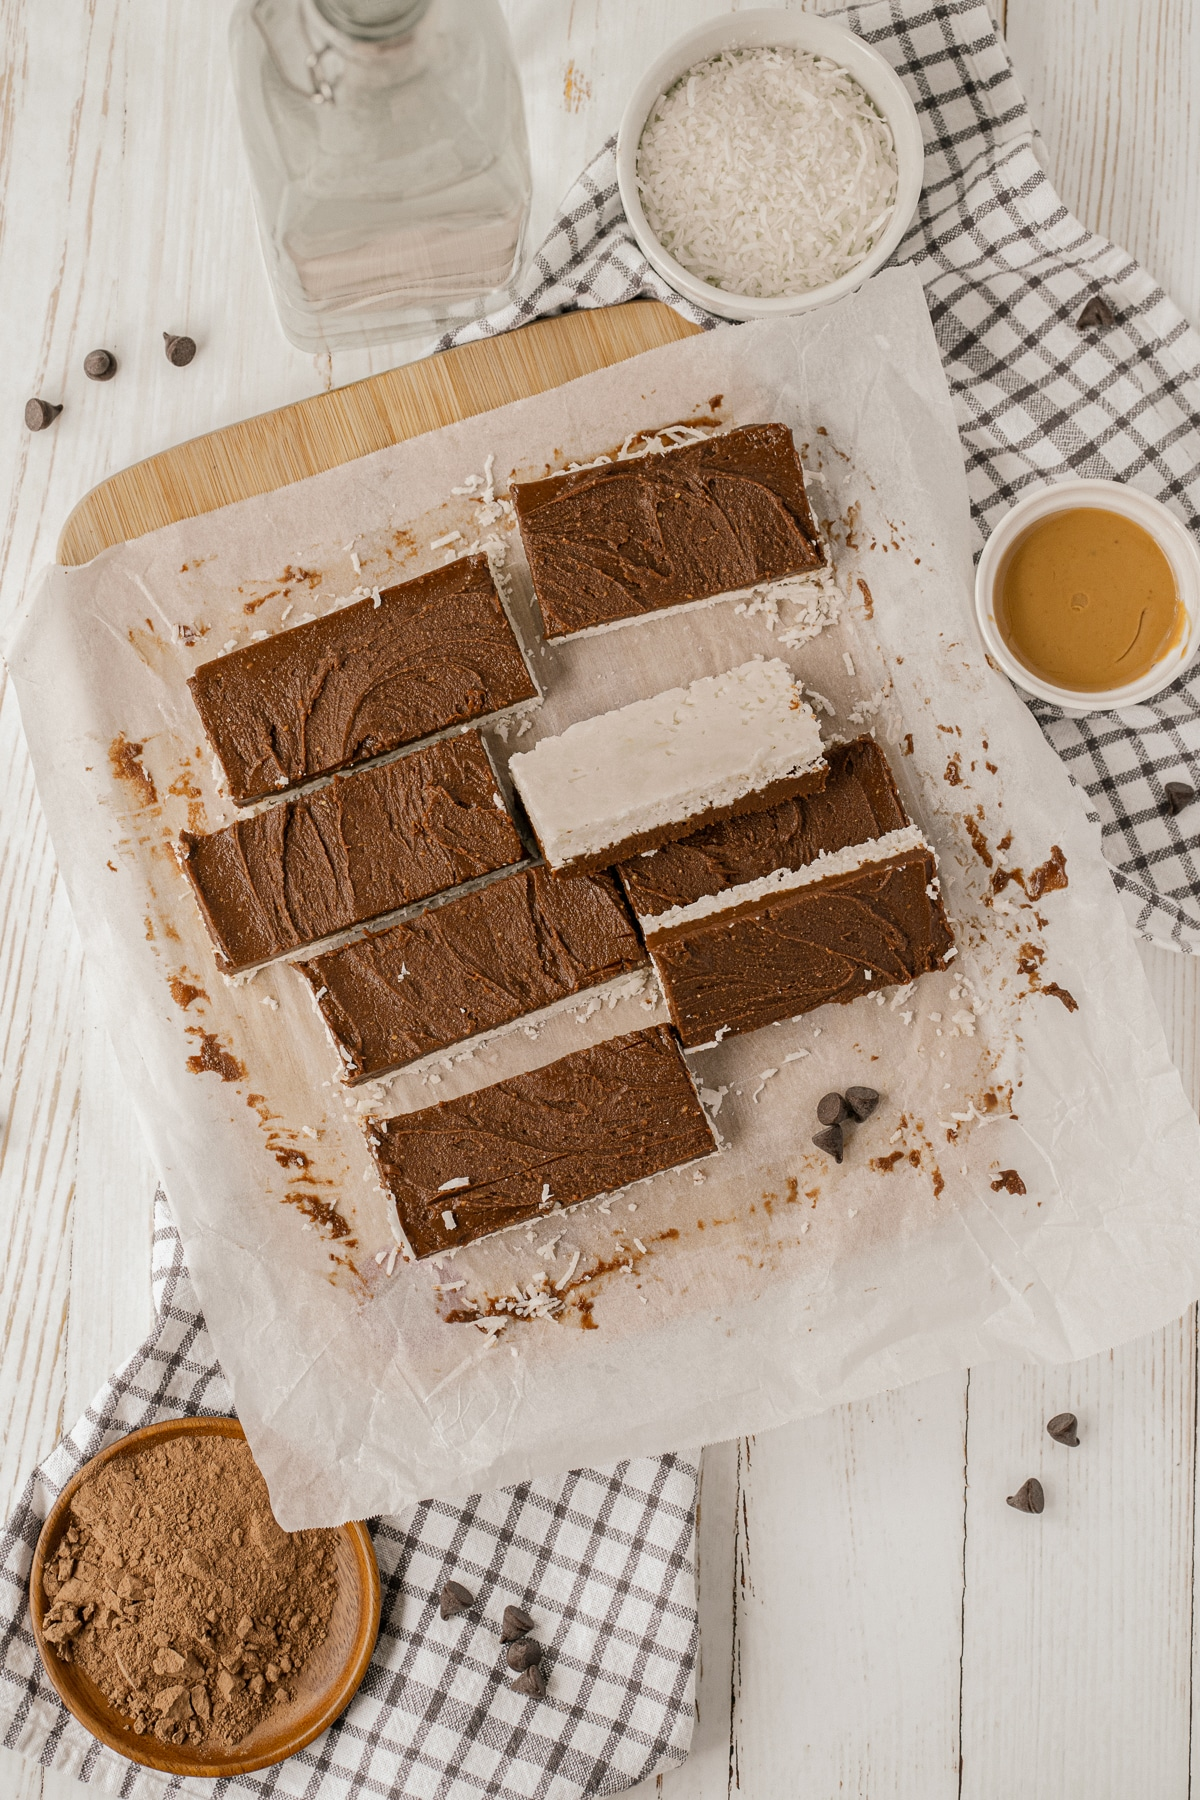 These No Bake Coconut Fudge Bars will be ready in minutes and are crazy delicious. They are vegan, gluten free, dairy free, sugar free and low carb!